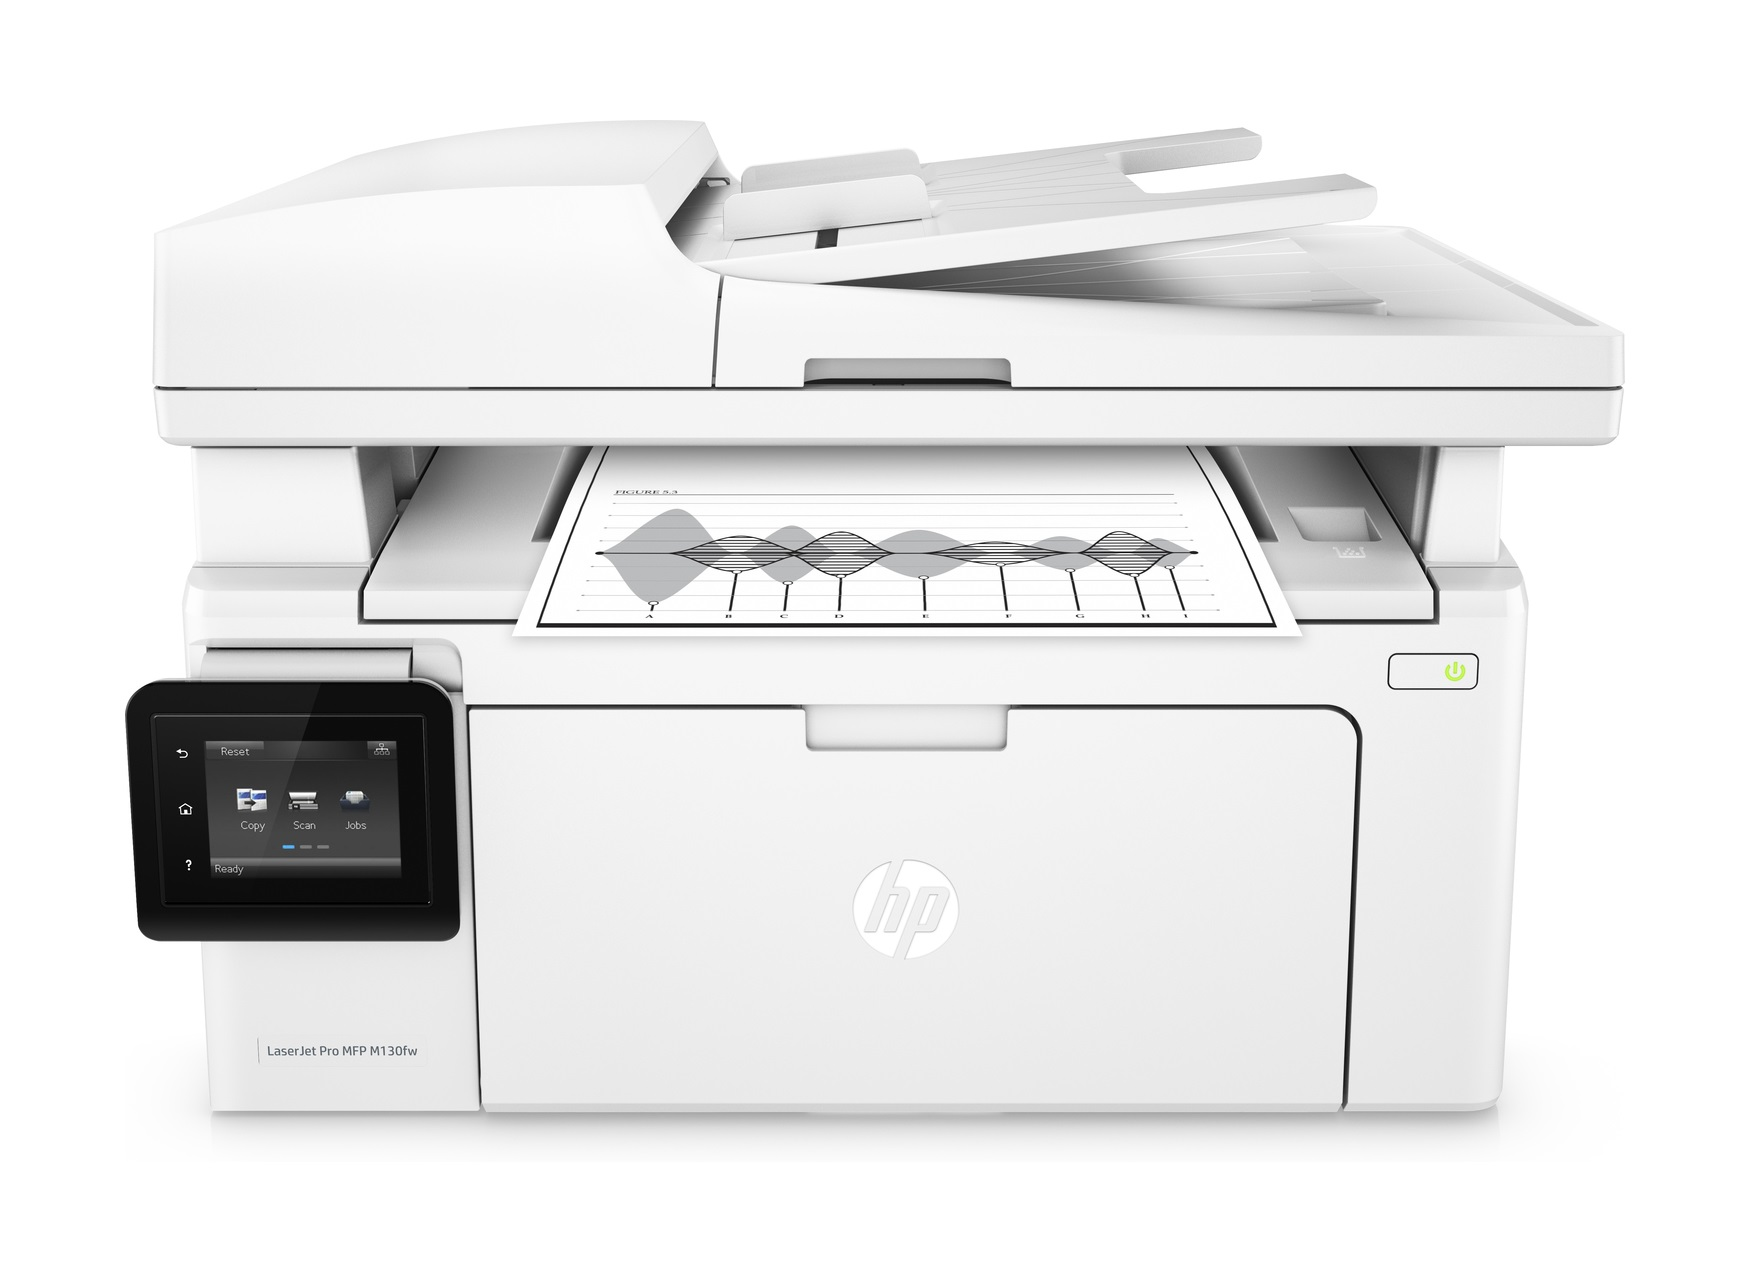 hp-mfp m130fw.png